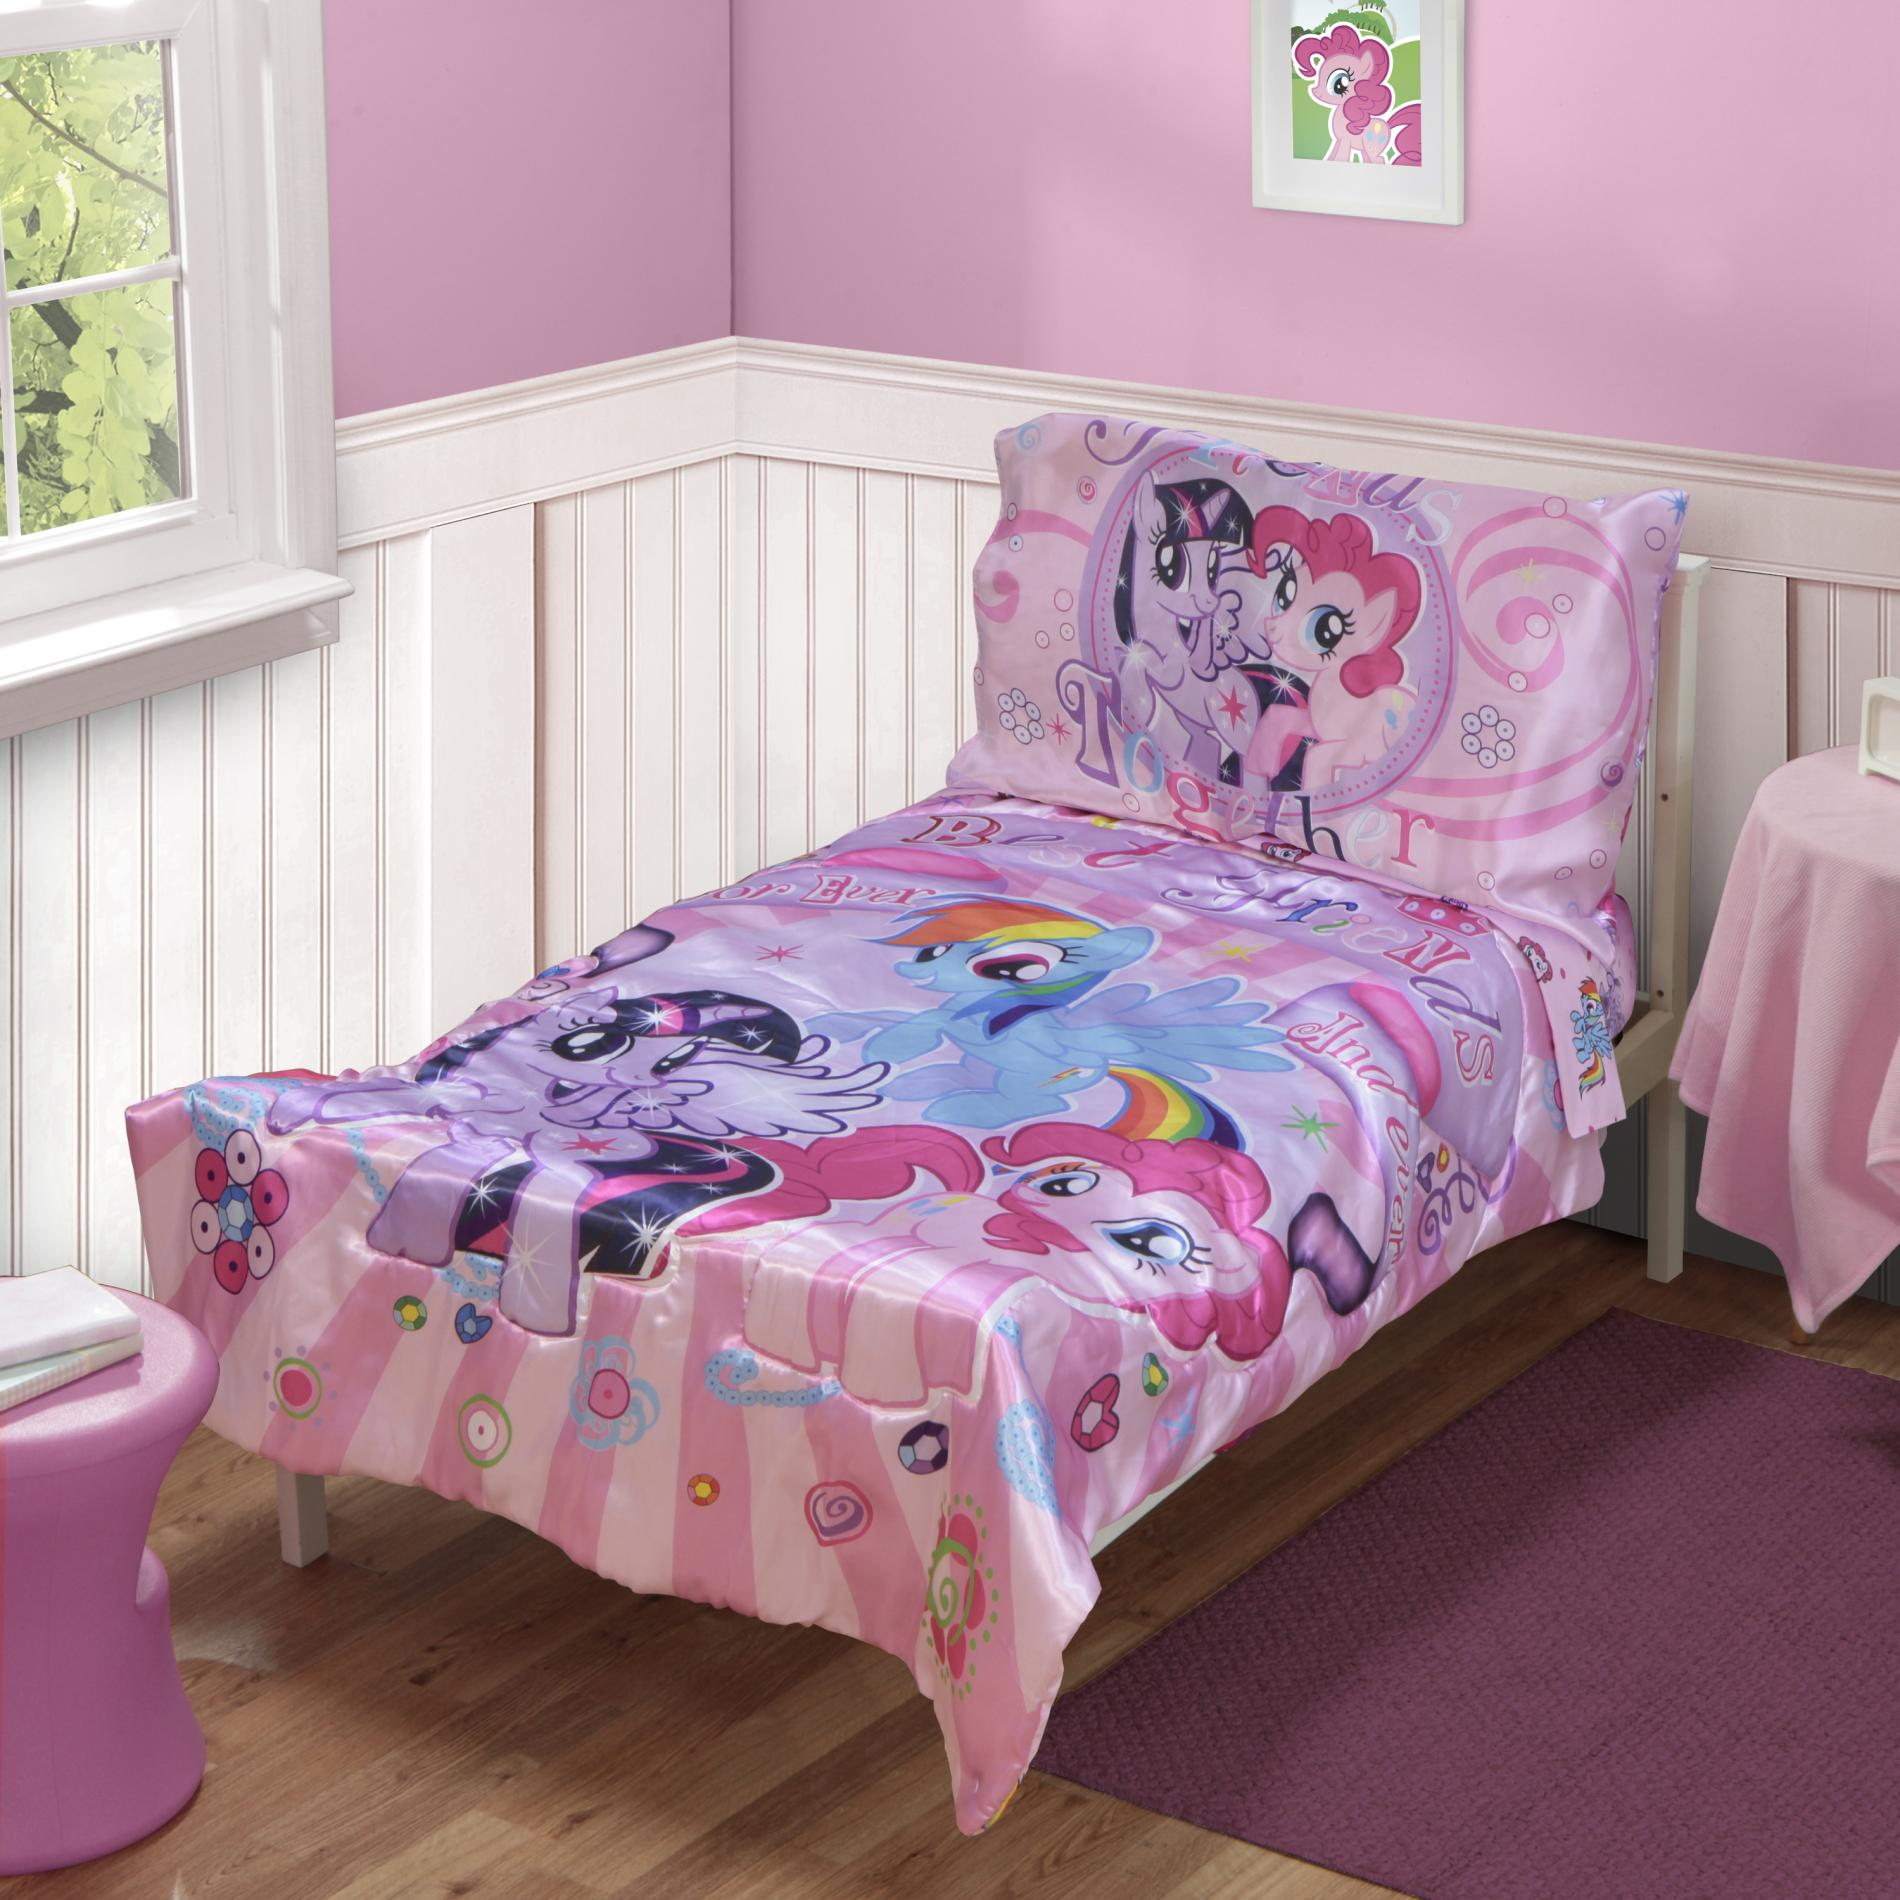 Little Pony 4-piece Toddler Girl' Bed Set - Baby Bedding Sets & Collections